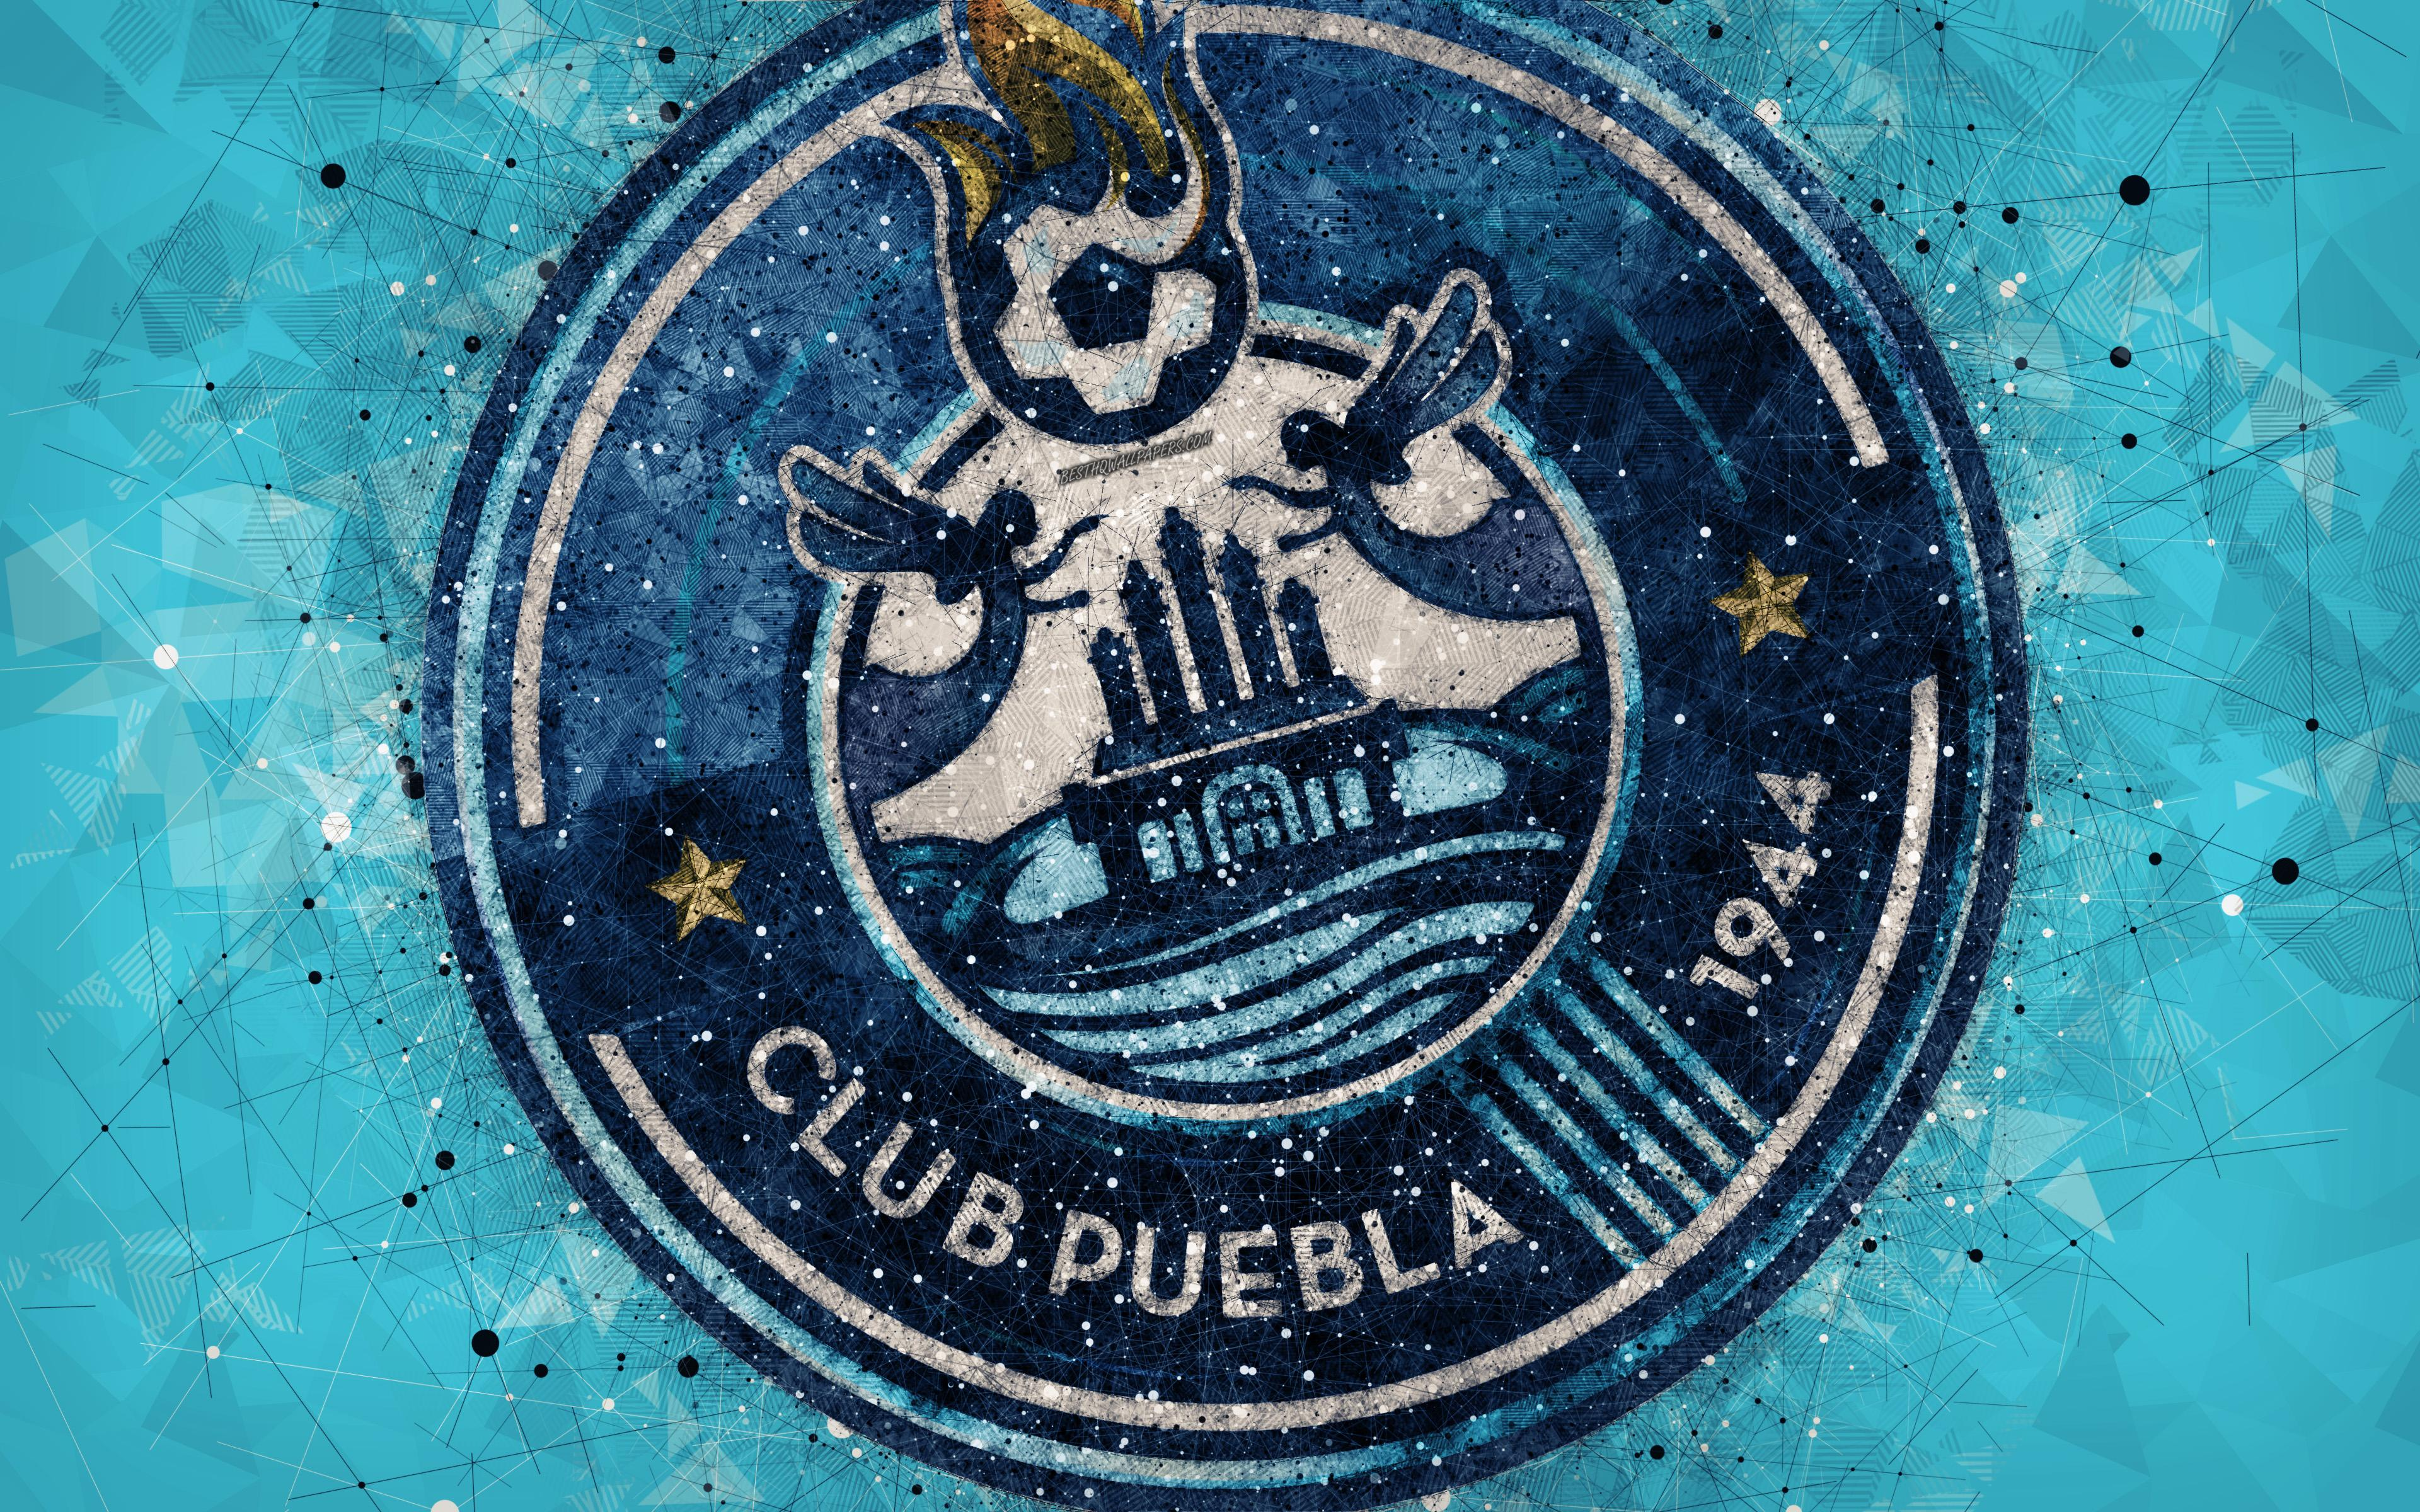 Download wallpapers Puebla FC, 4k, geometric art, logo, Mexican ...